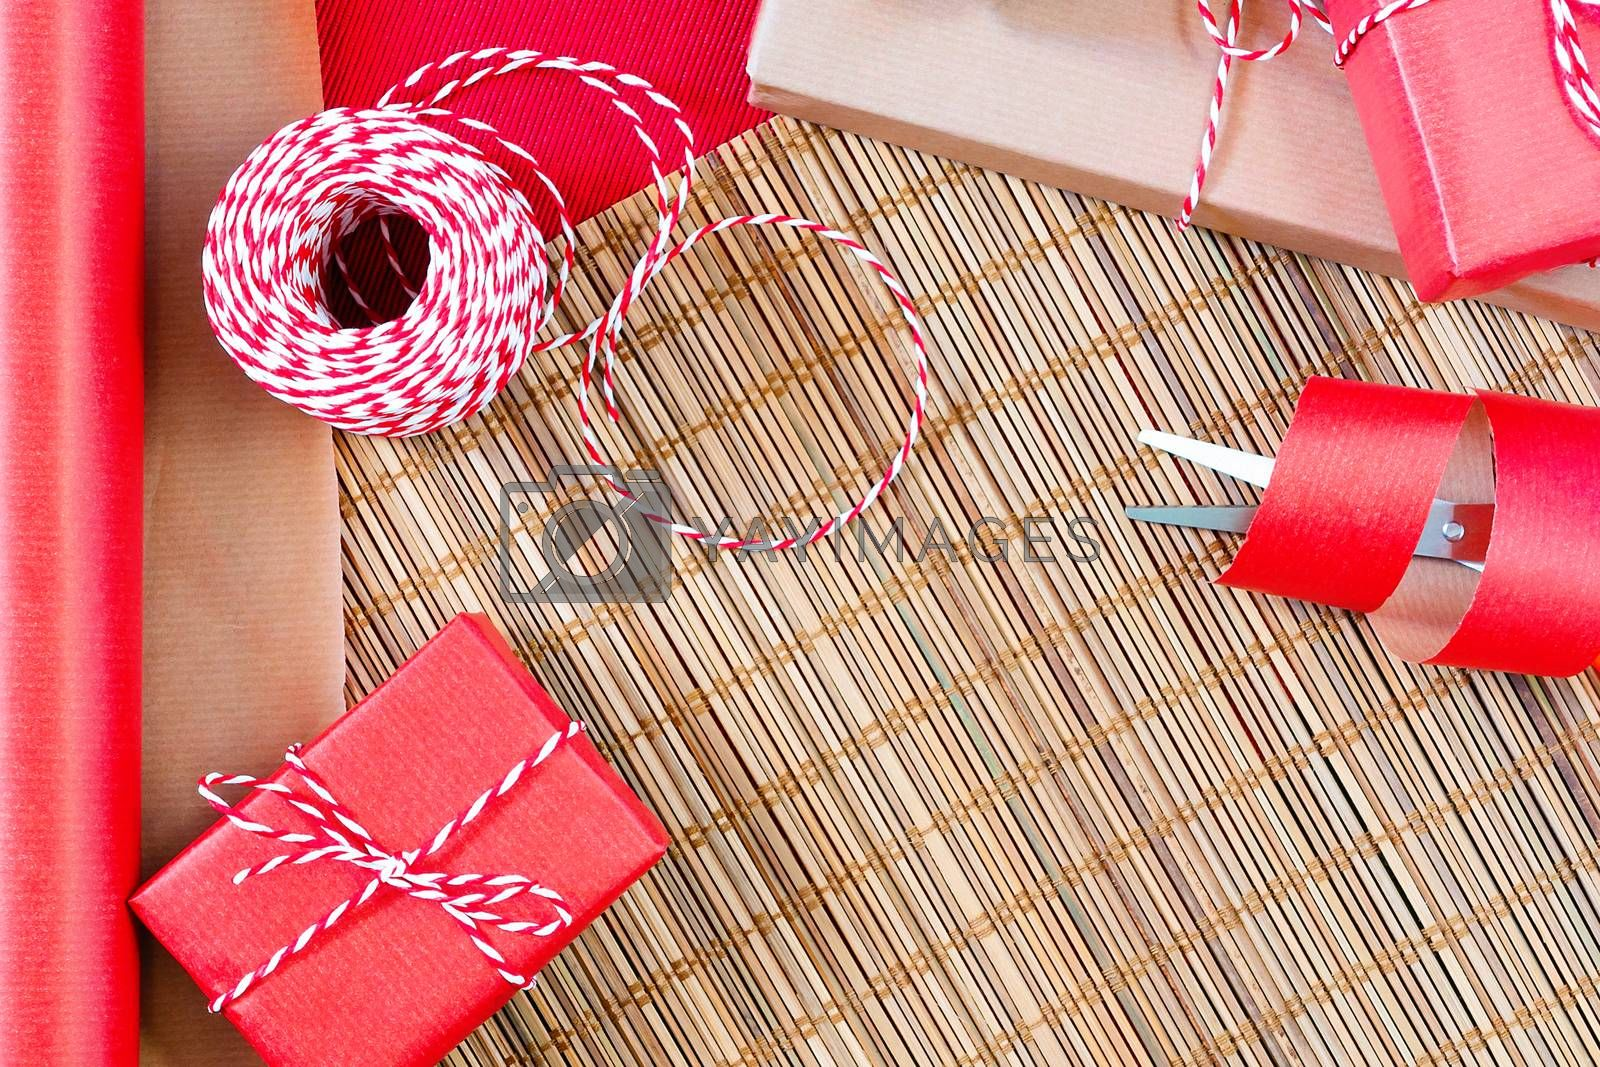 Preparing for the holiday - gift wrapping in red and beige wrapping paper by galsand